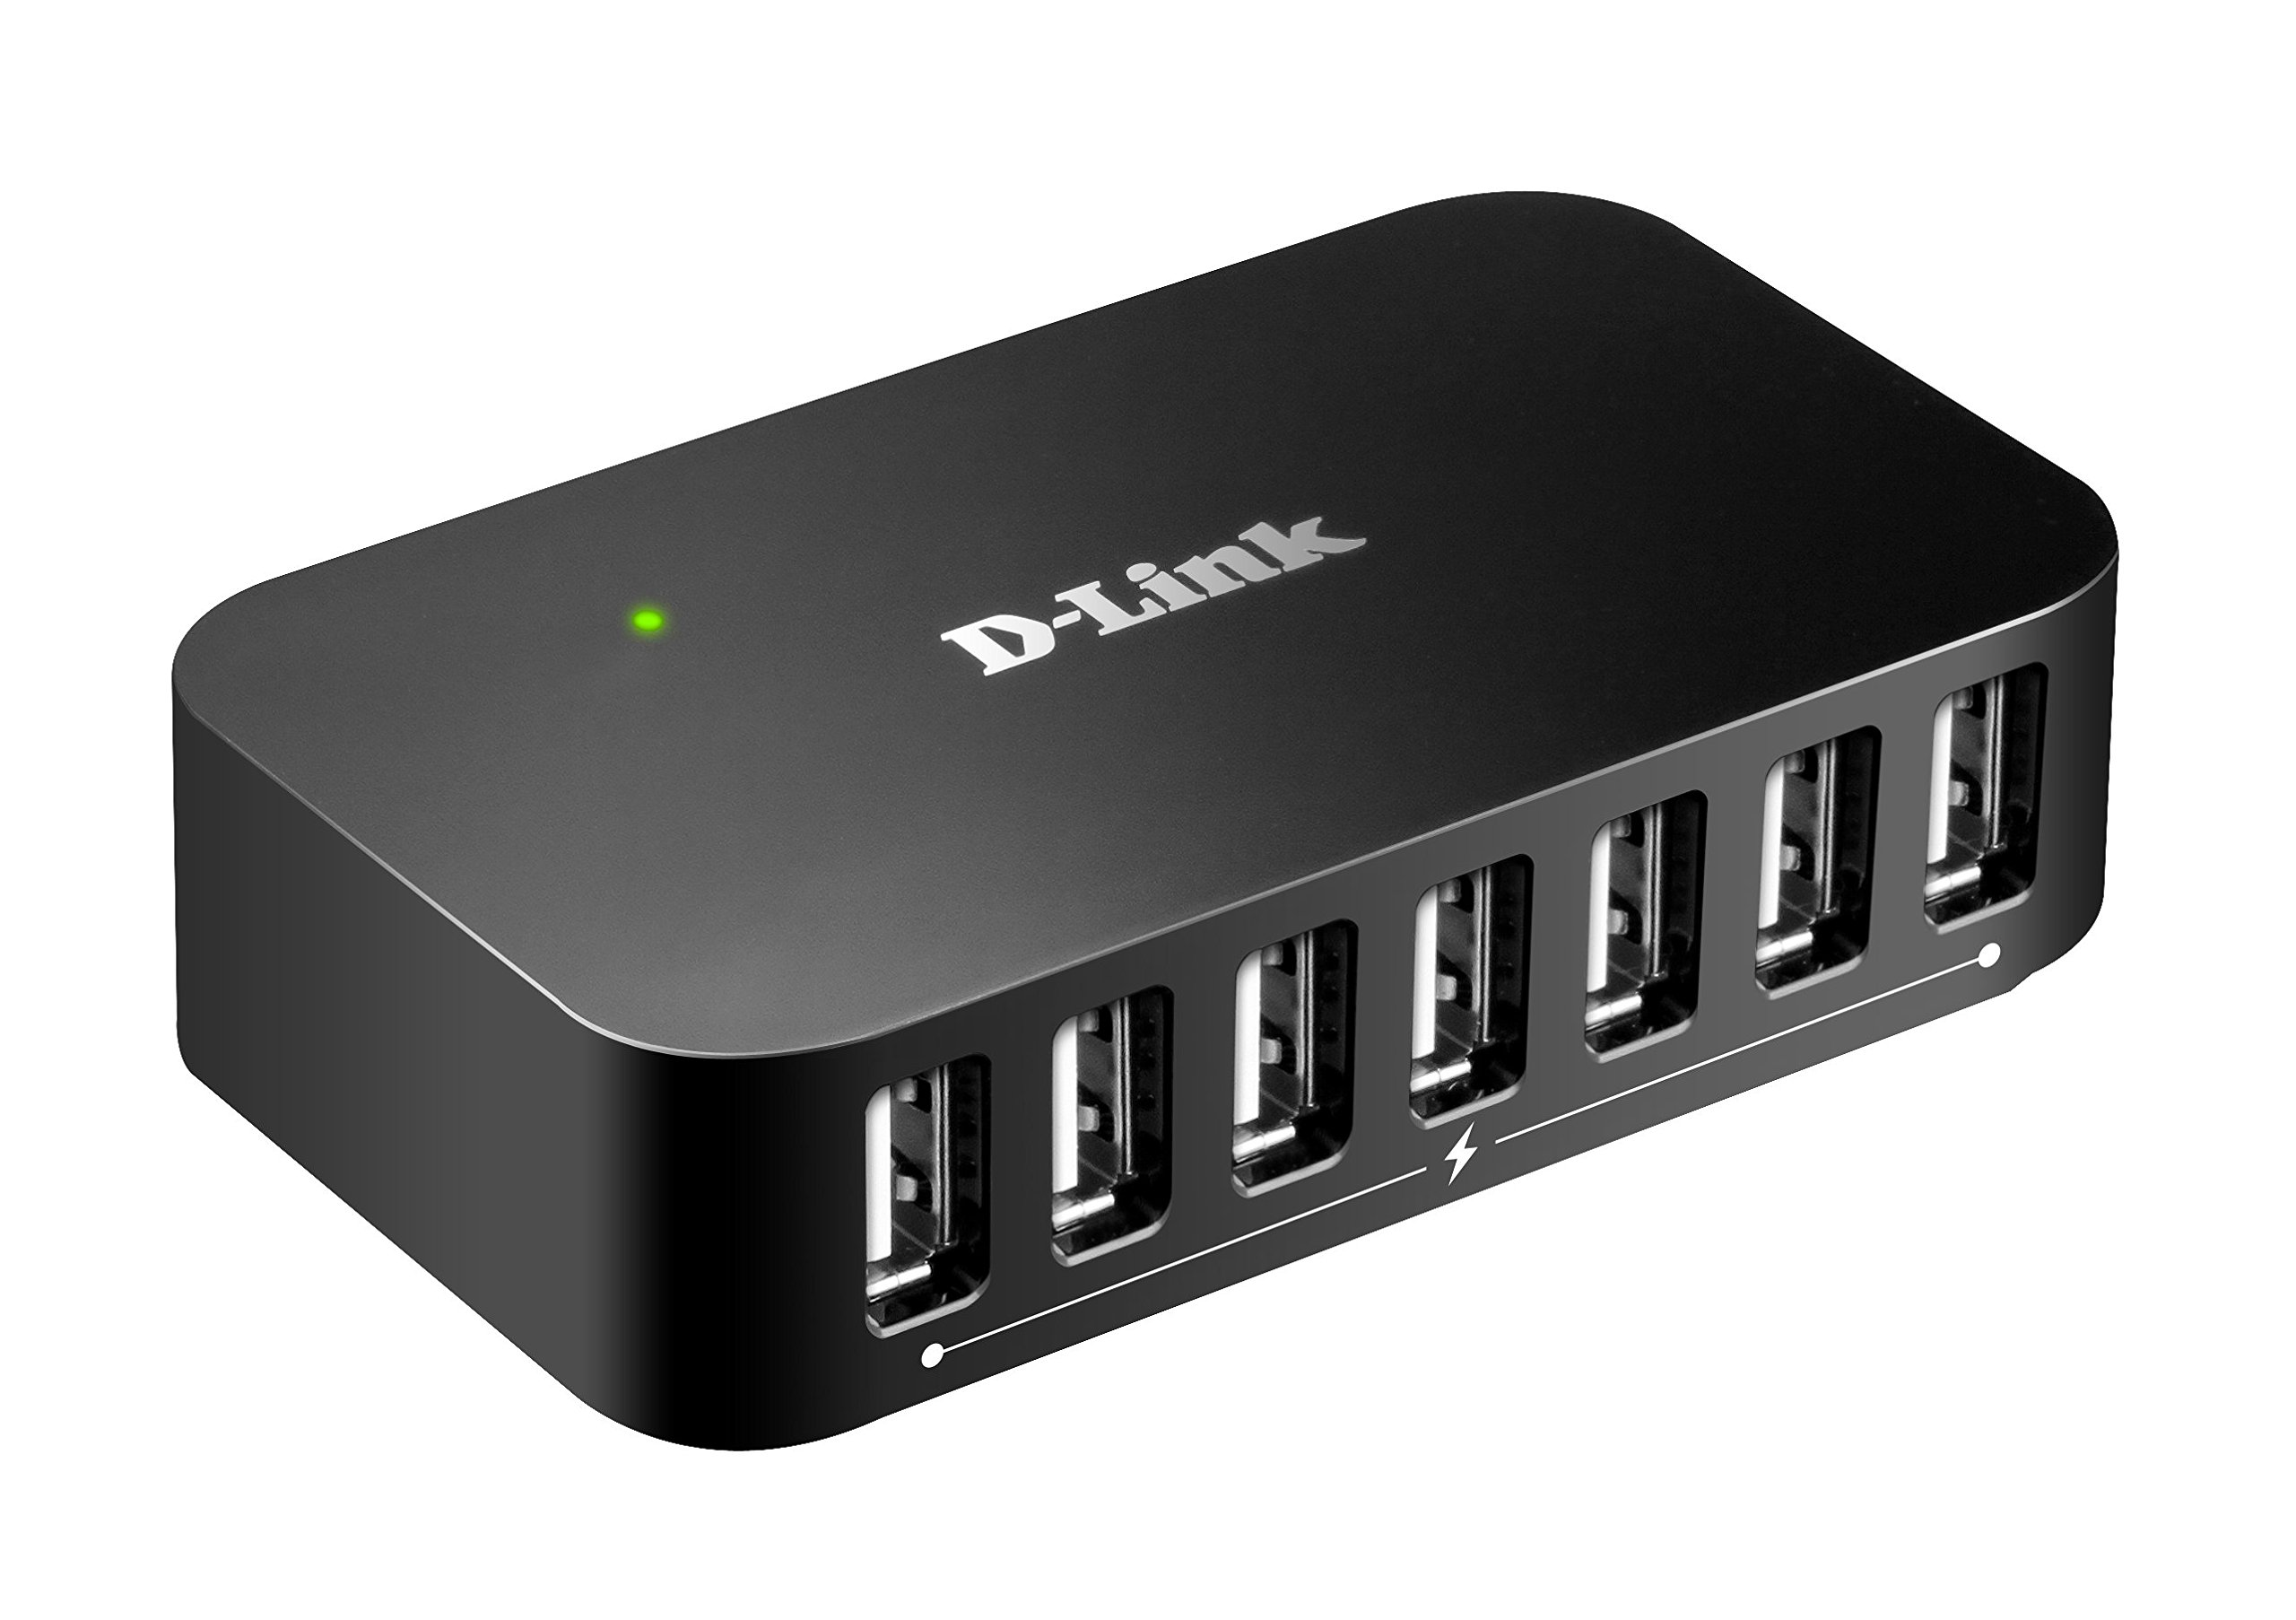 D-Link 7-Port USB 2.0 Hub including 7 Fast Charging Ports, mini USB 2.0 Port  and 5V/3A Power Adapter (DUB-H7) by D-Link